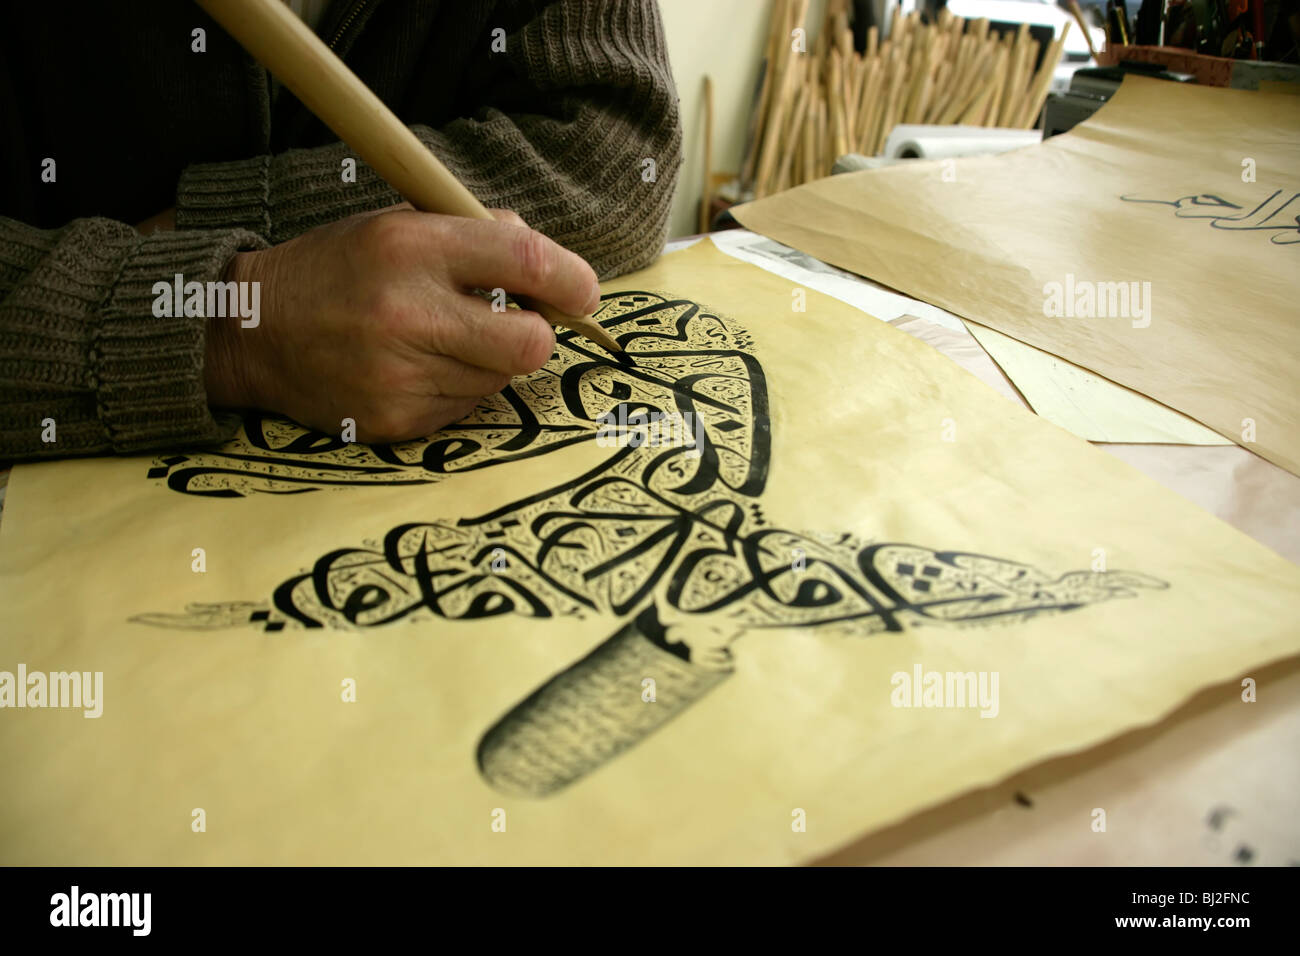 Traditional arabic calligraphy depicting a whirling dervish in Istanbul, Turkey, by Hattat Kamil Nazik - Stock Image